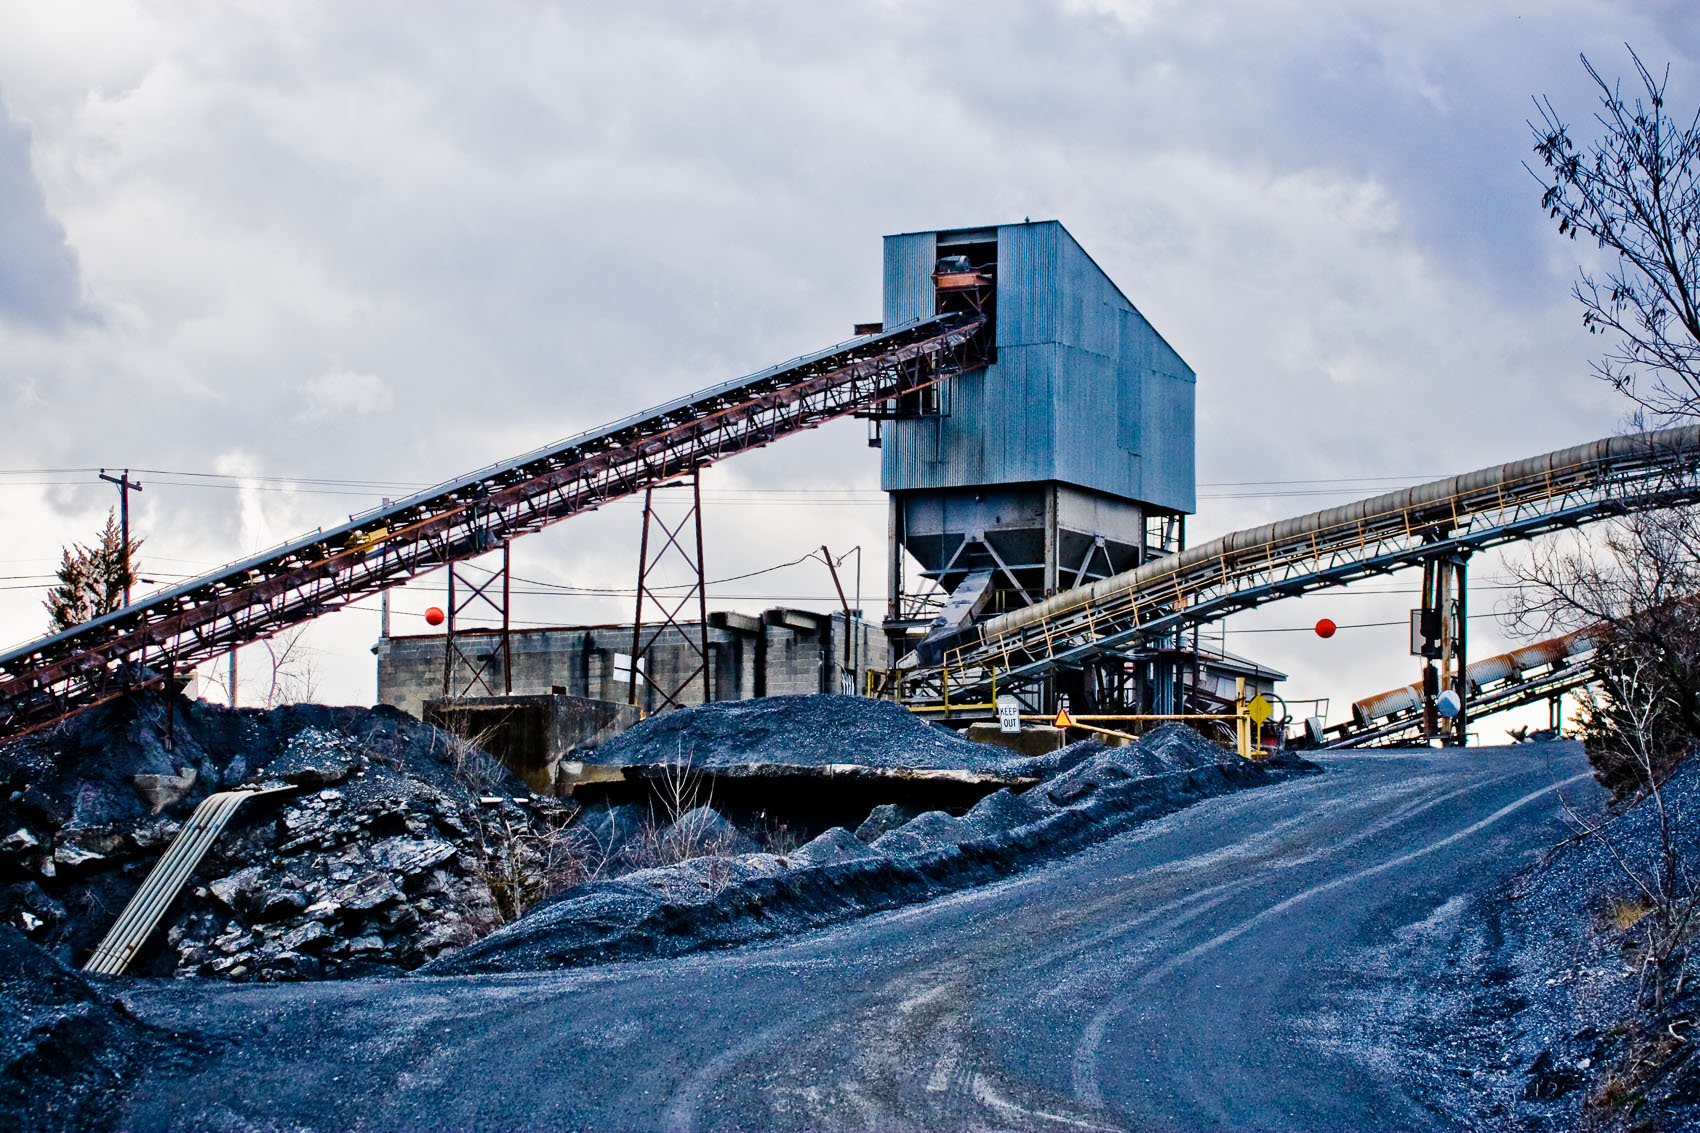 Limestone Quarrying Conveyors and Crushing Equipment | J. Eldon Zimmerman Photography | Lancaster, PA Industrial Photographer